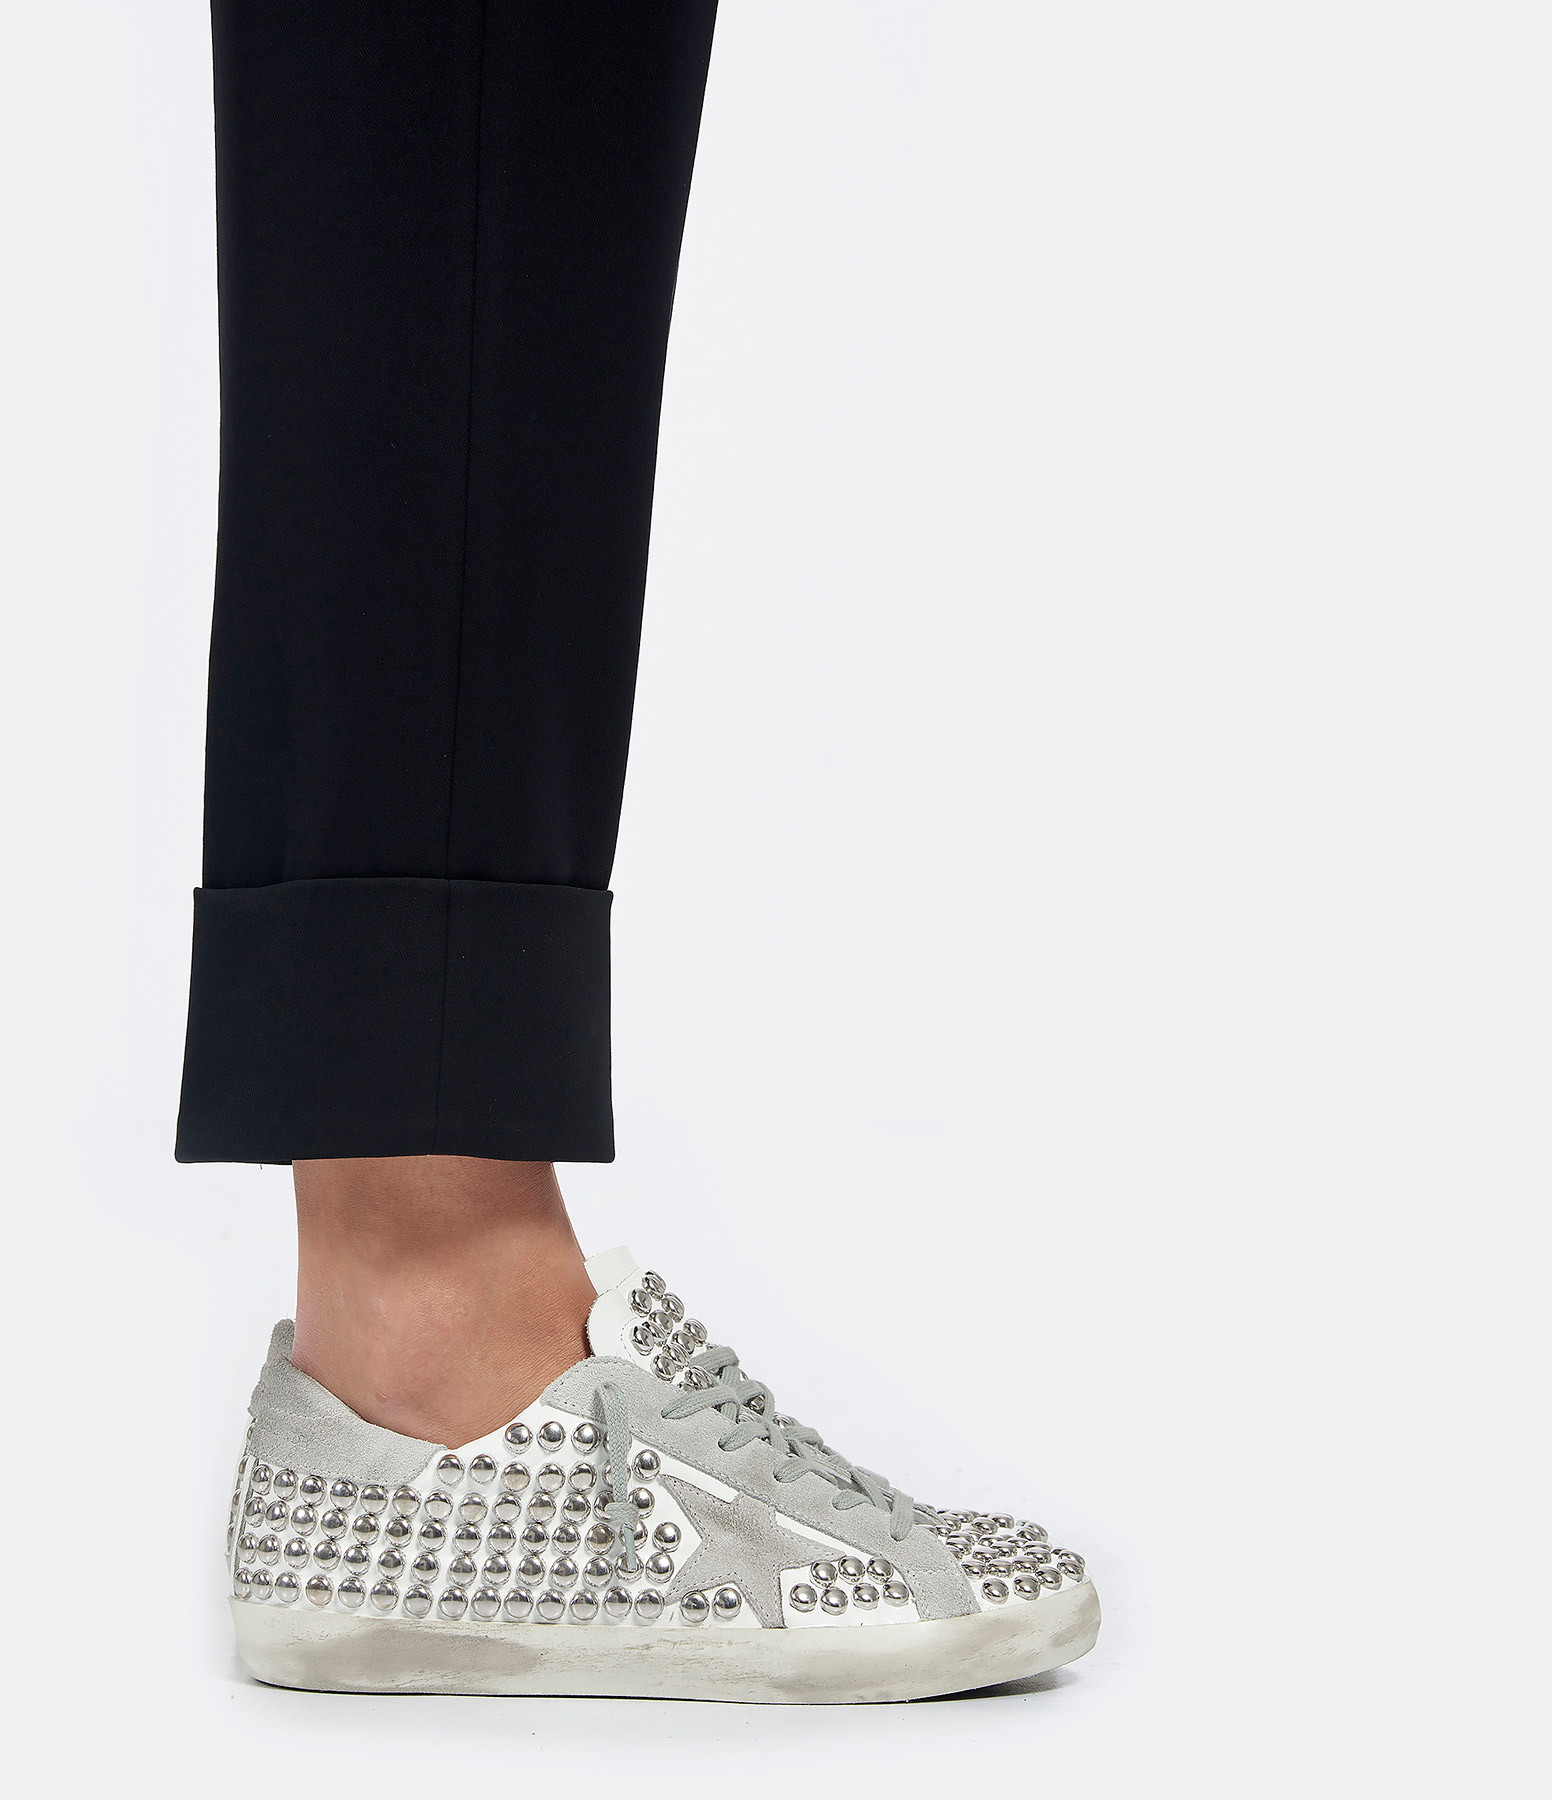 Baskets Superstar Old Cuir Clous Blanc - GOLDEN GOOSE